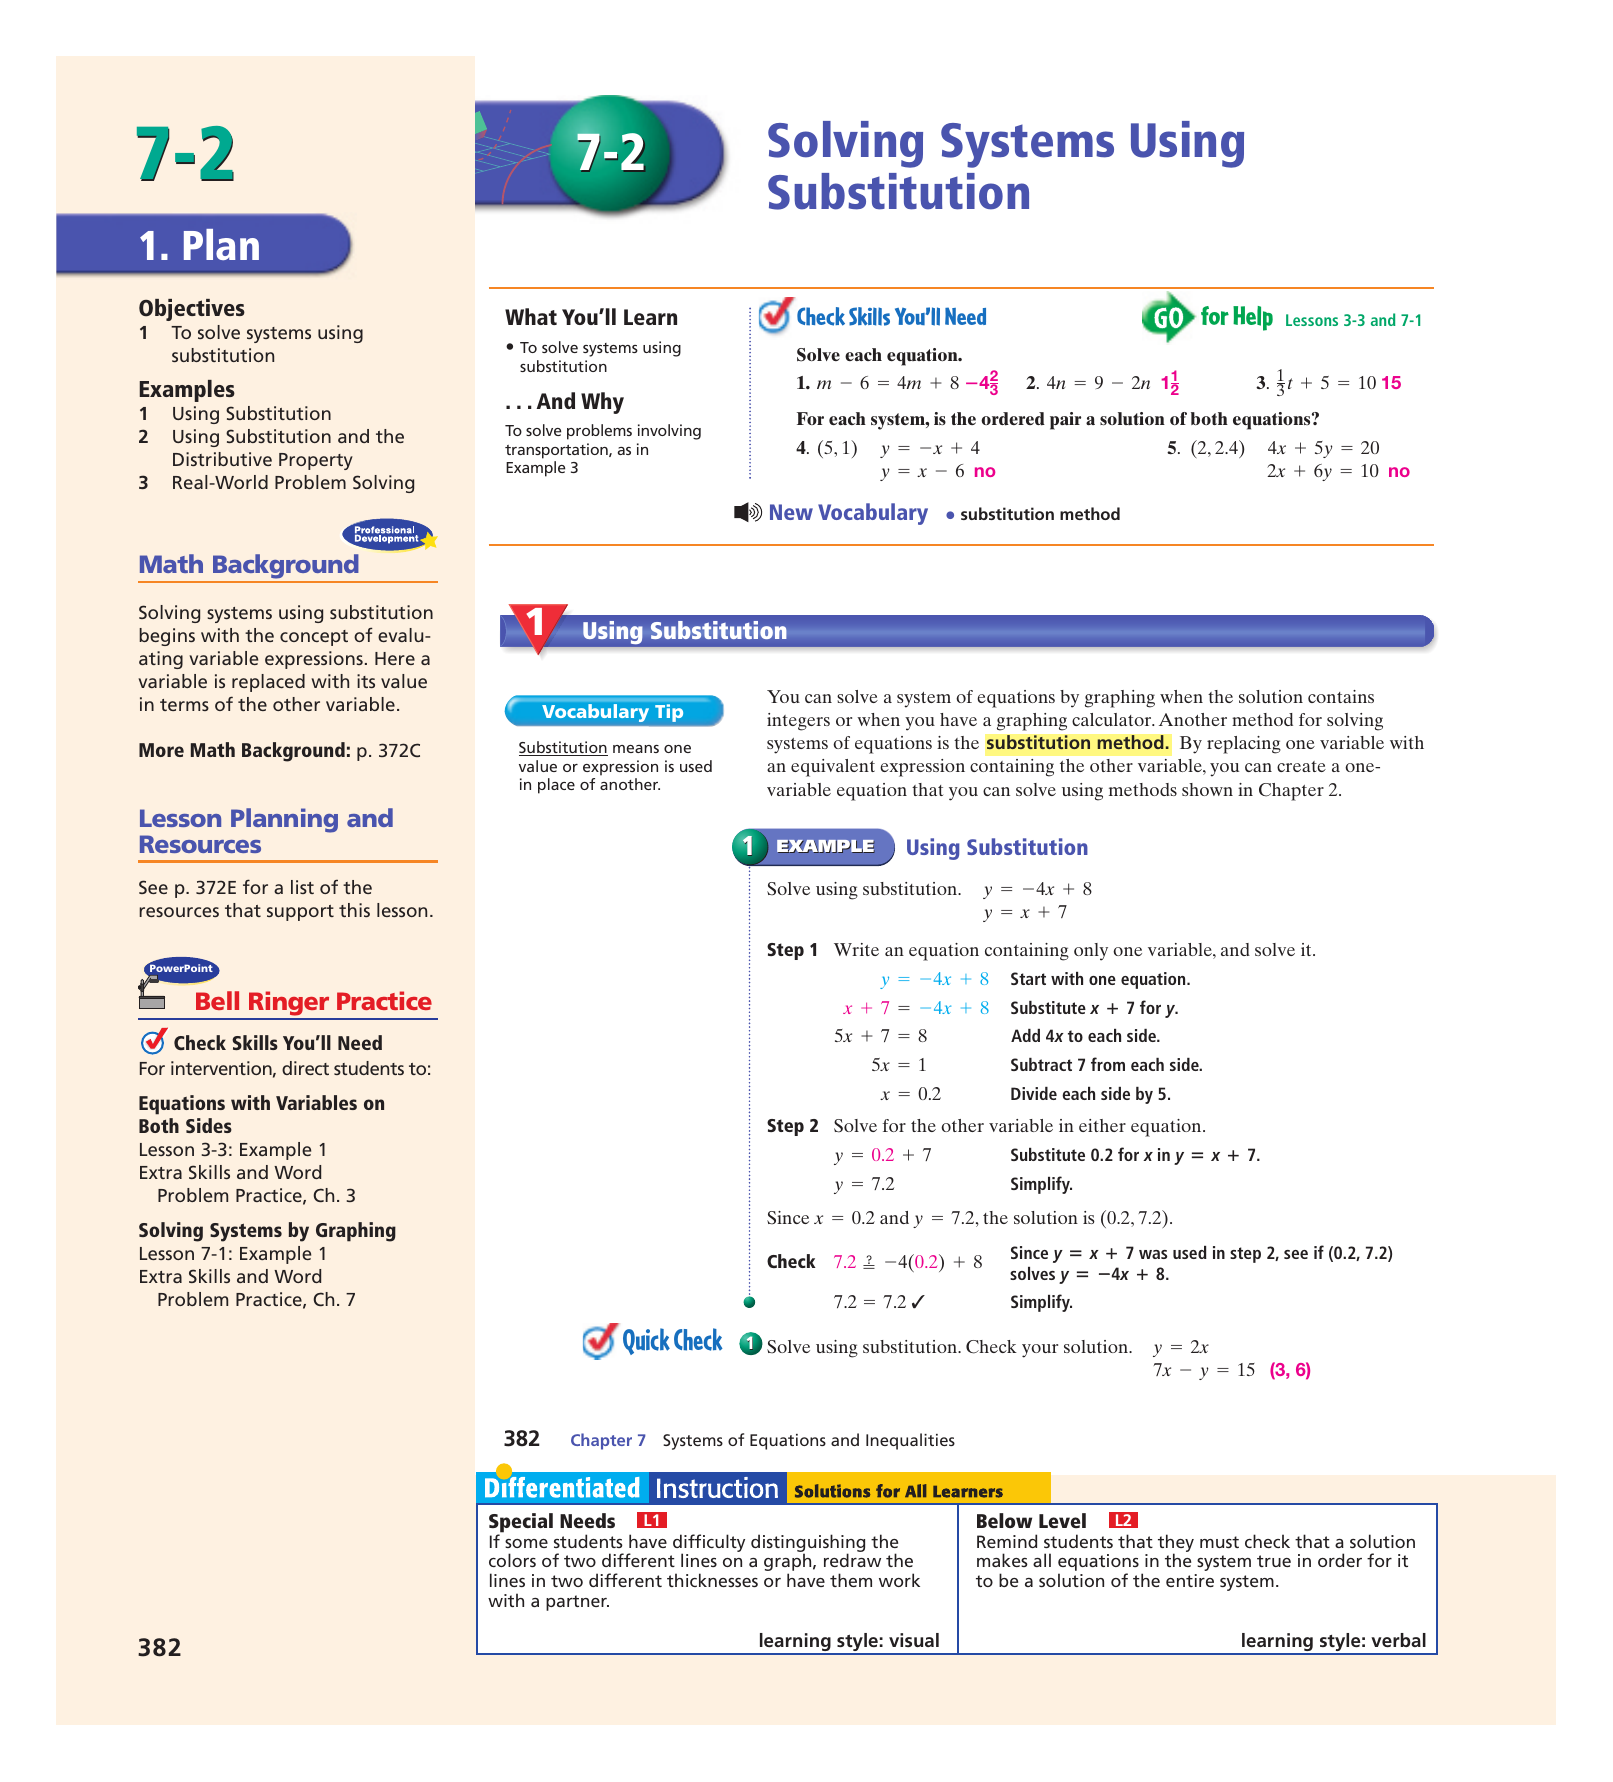 7-2 Solving Systems Using Substitution